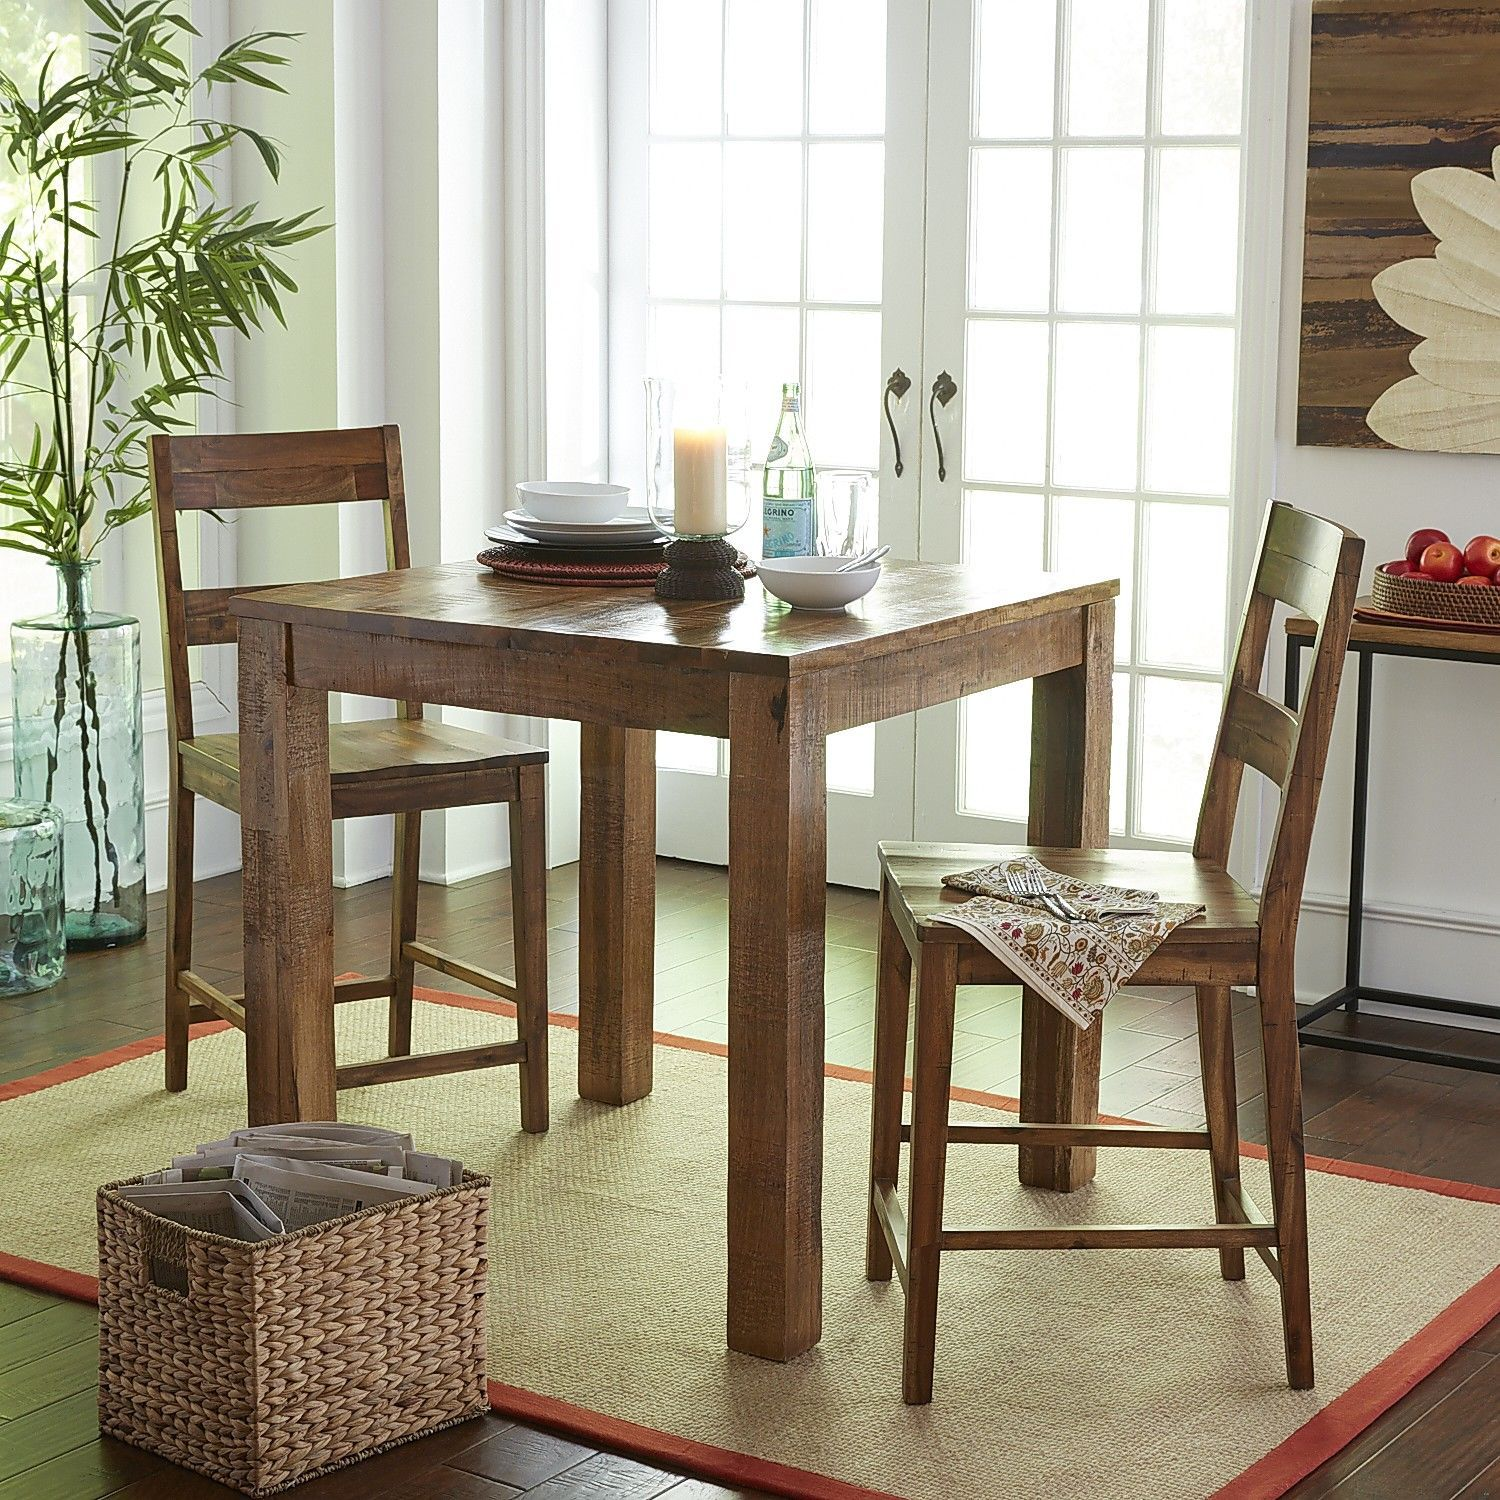 Build Your Own Parsons Java Counter Table Collection Jones Family - Parsons pub table